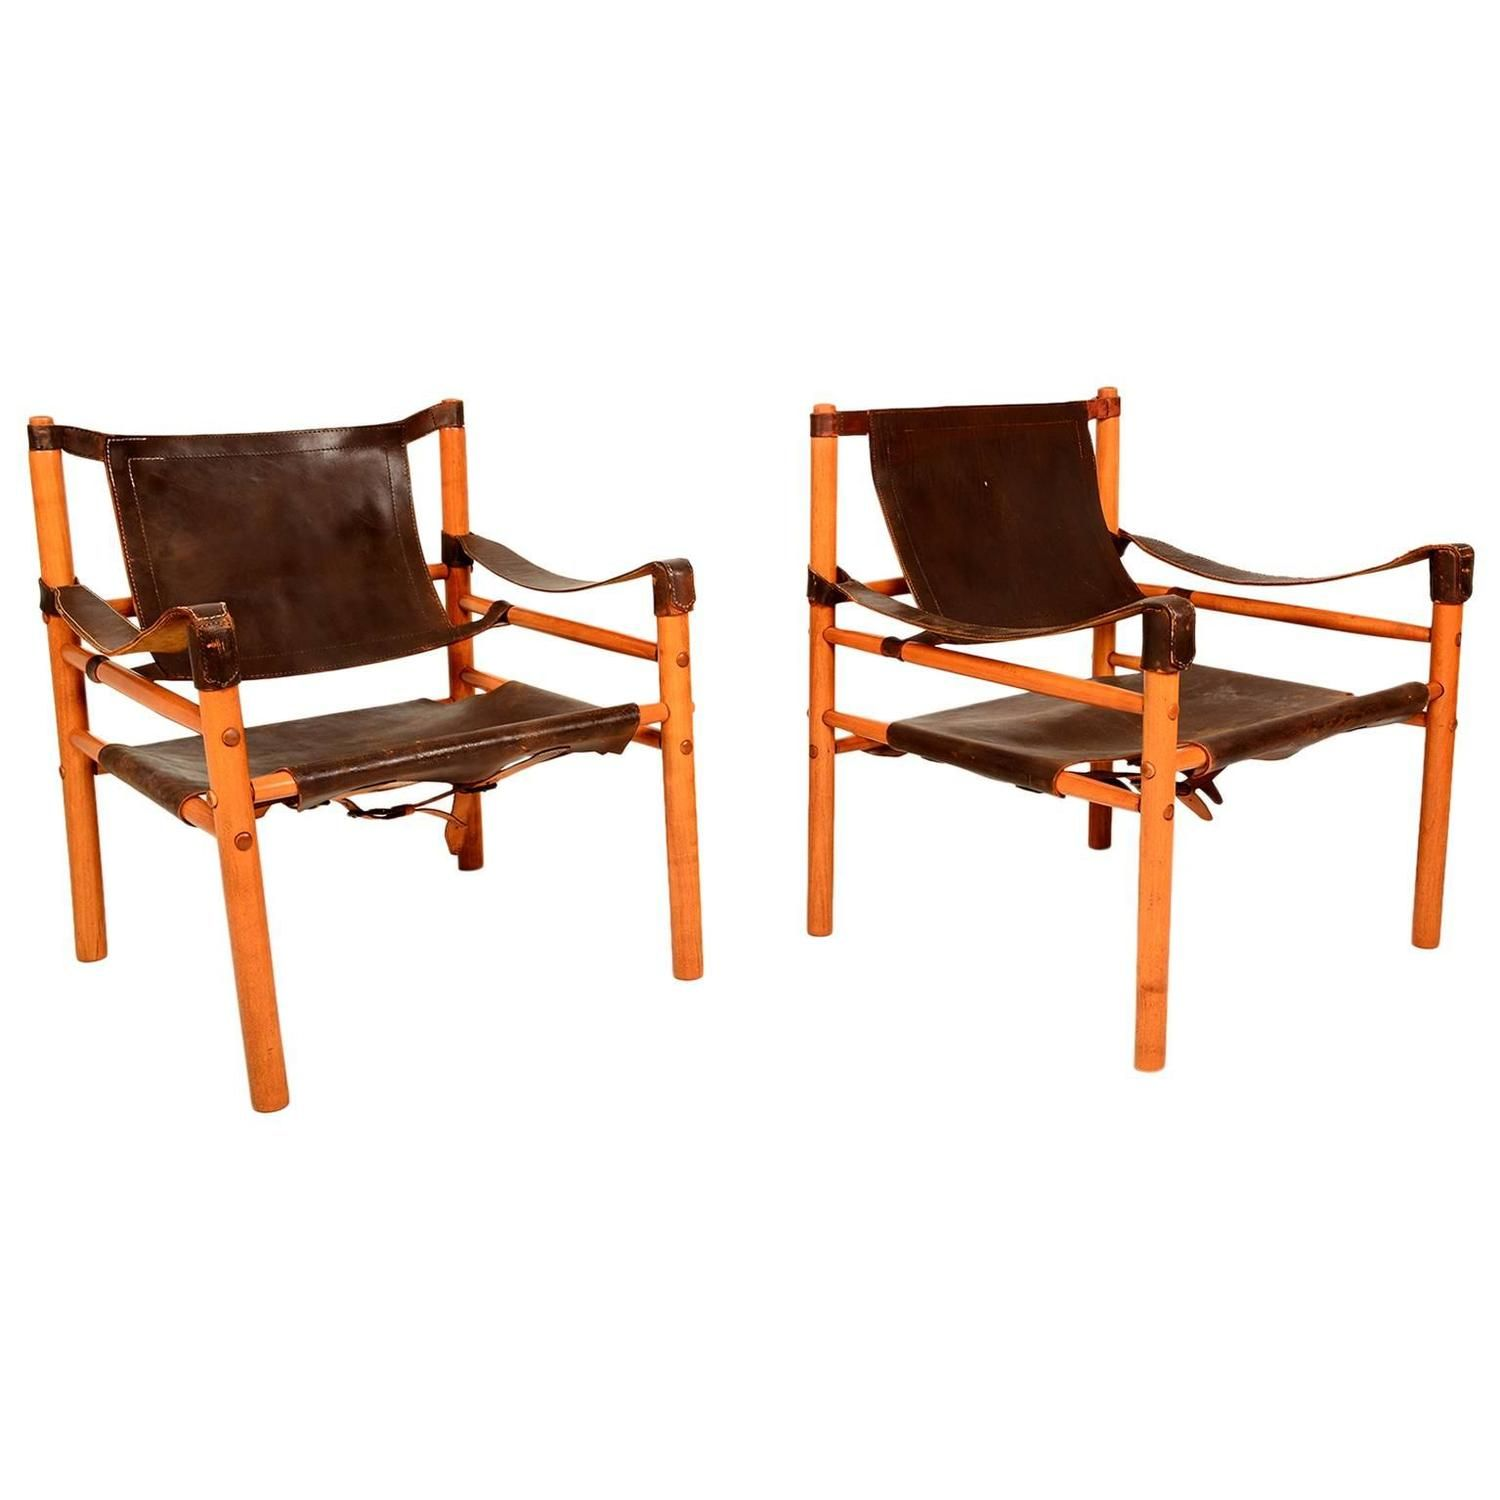 Mid Century Modern Pair of Safari Chairs Leather & Wood